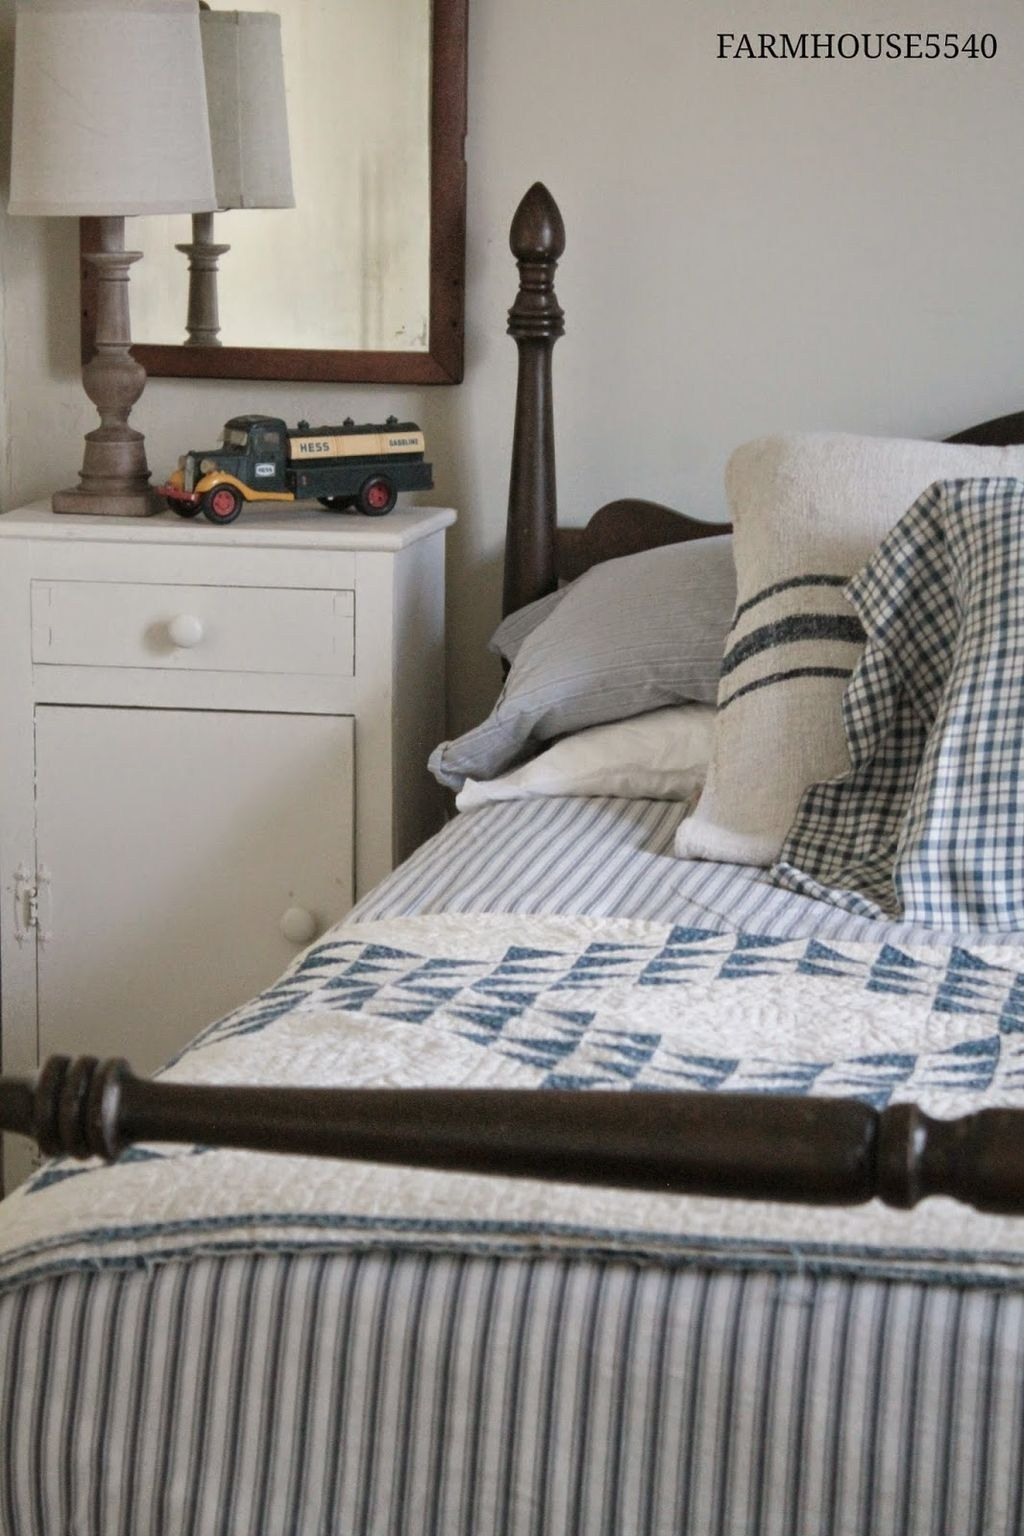 Vintage master bedroom decor  Classic and vintage farmhouse bedroom ideas   Vintage farmhouse